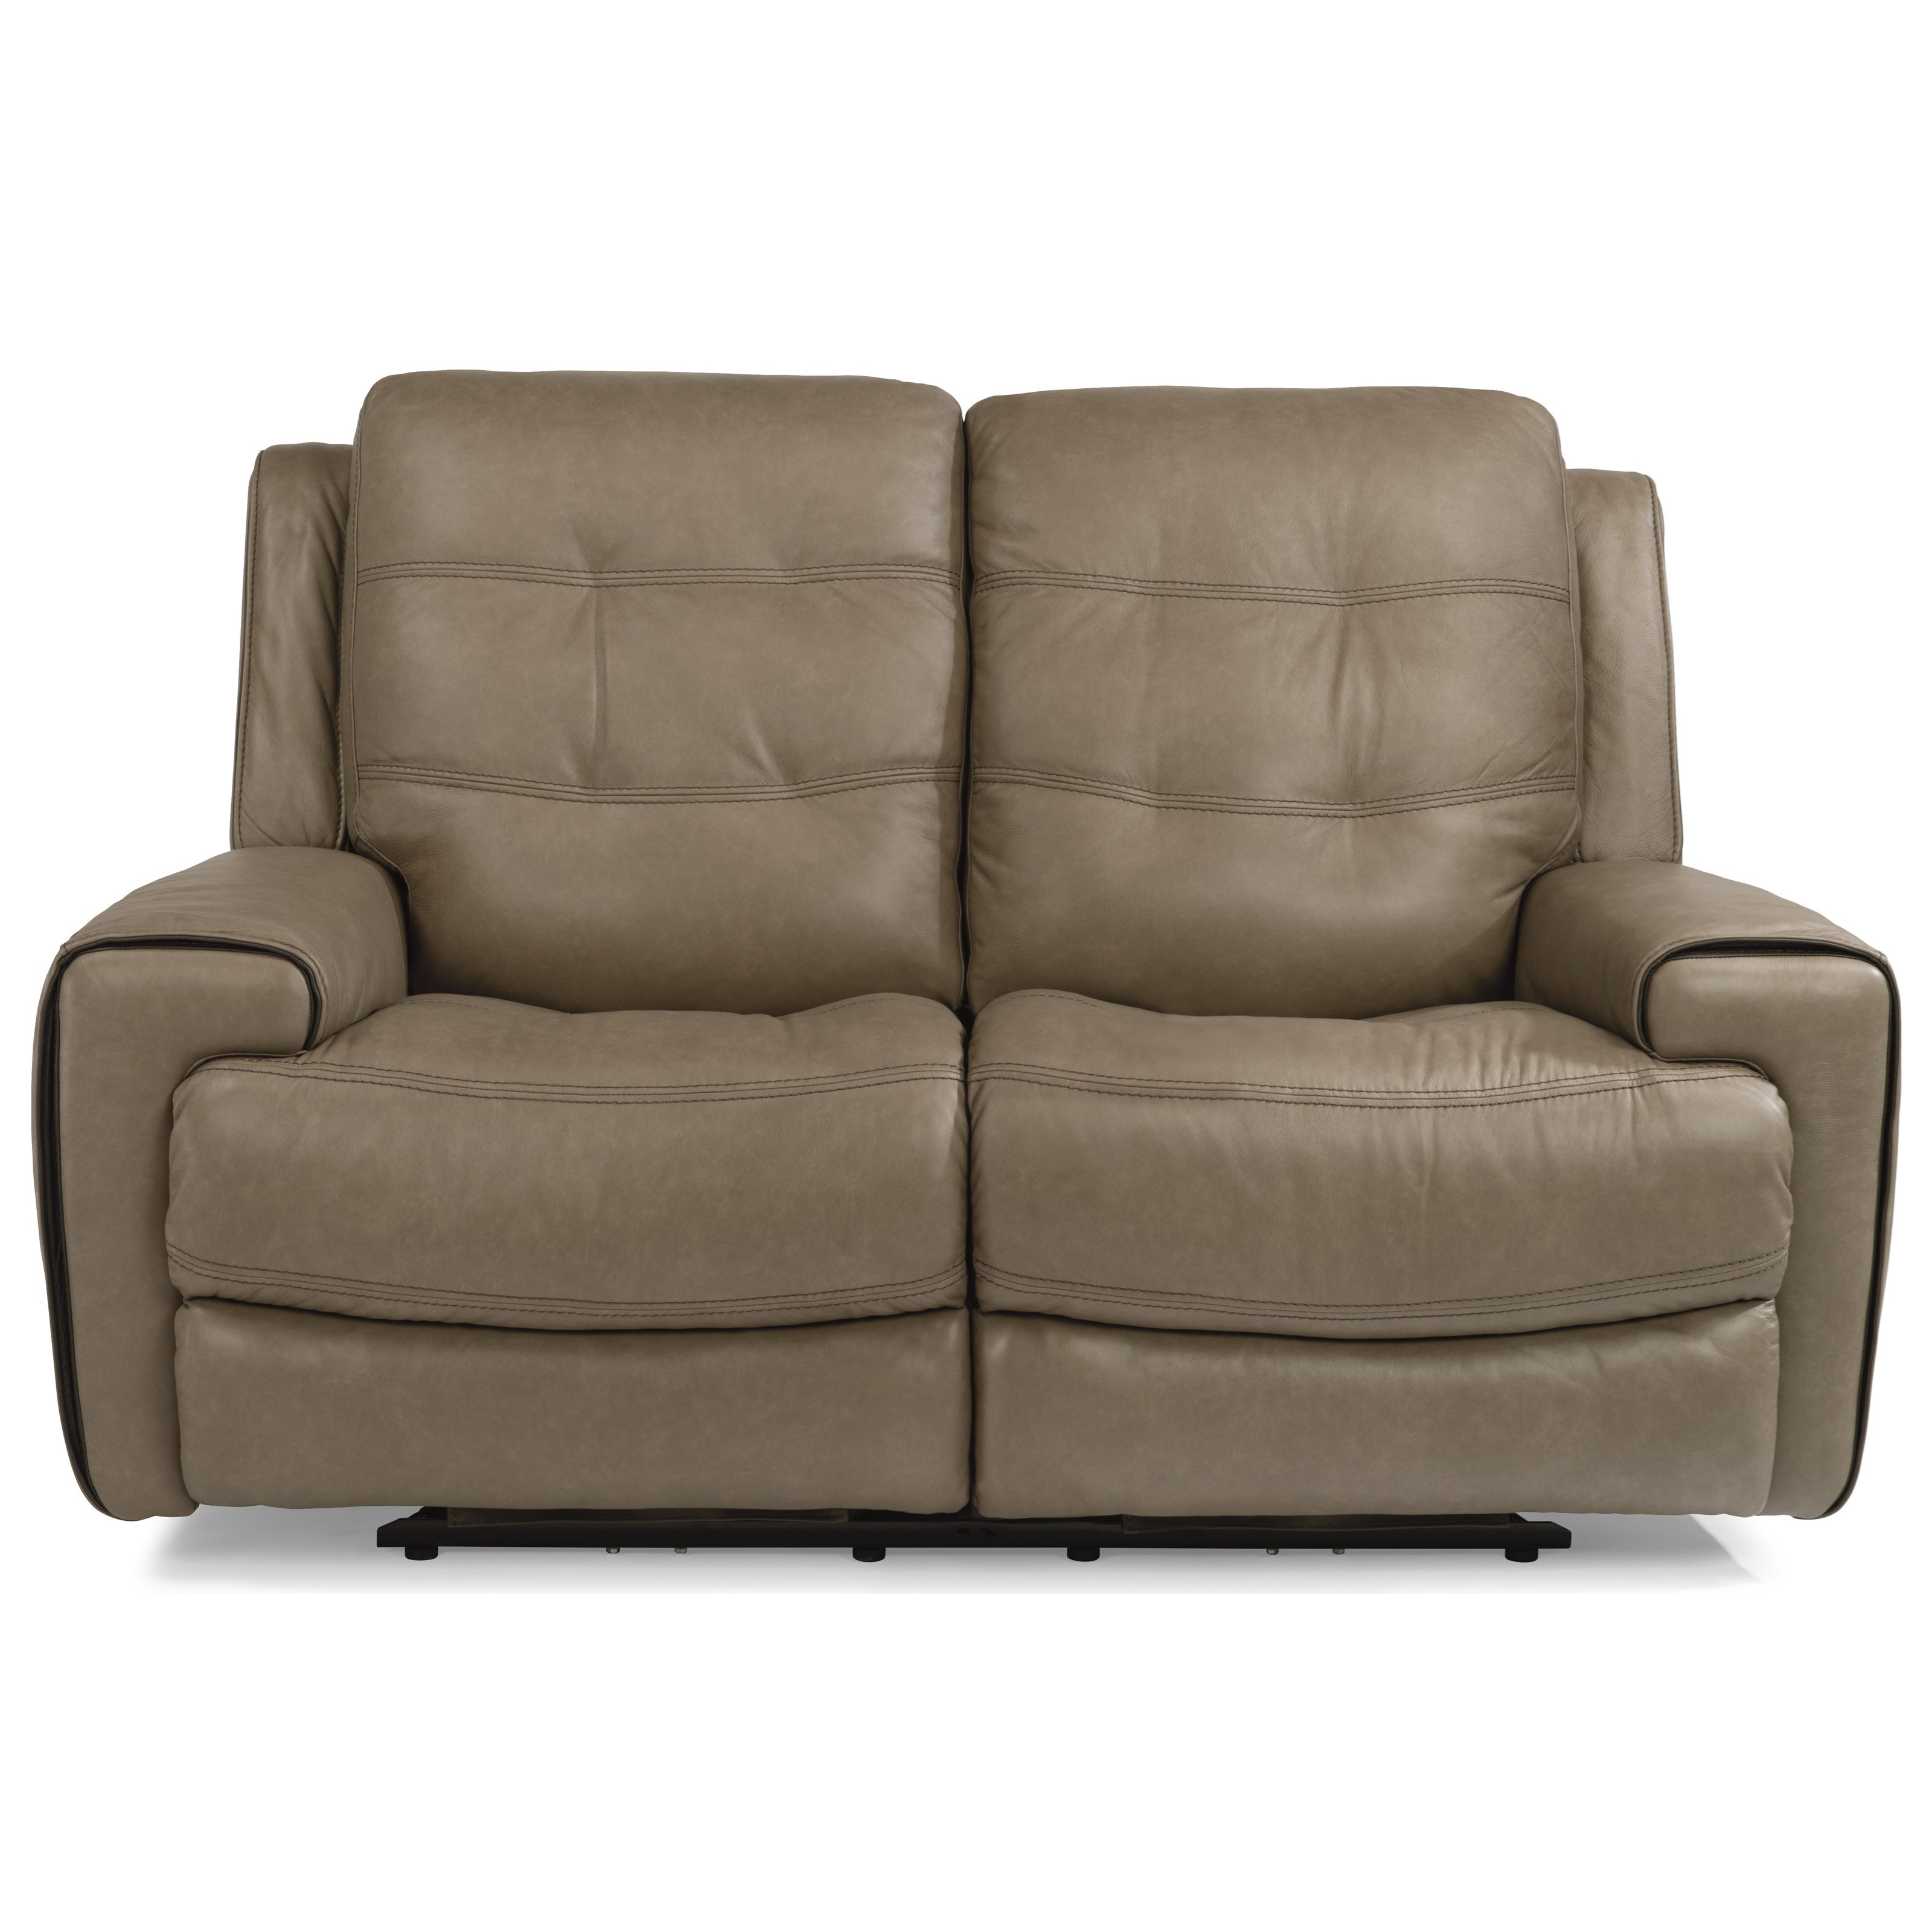 PWR Reclining Leather Sofa w/ PWR Headrest